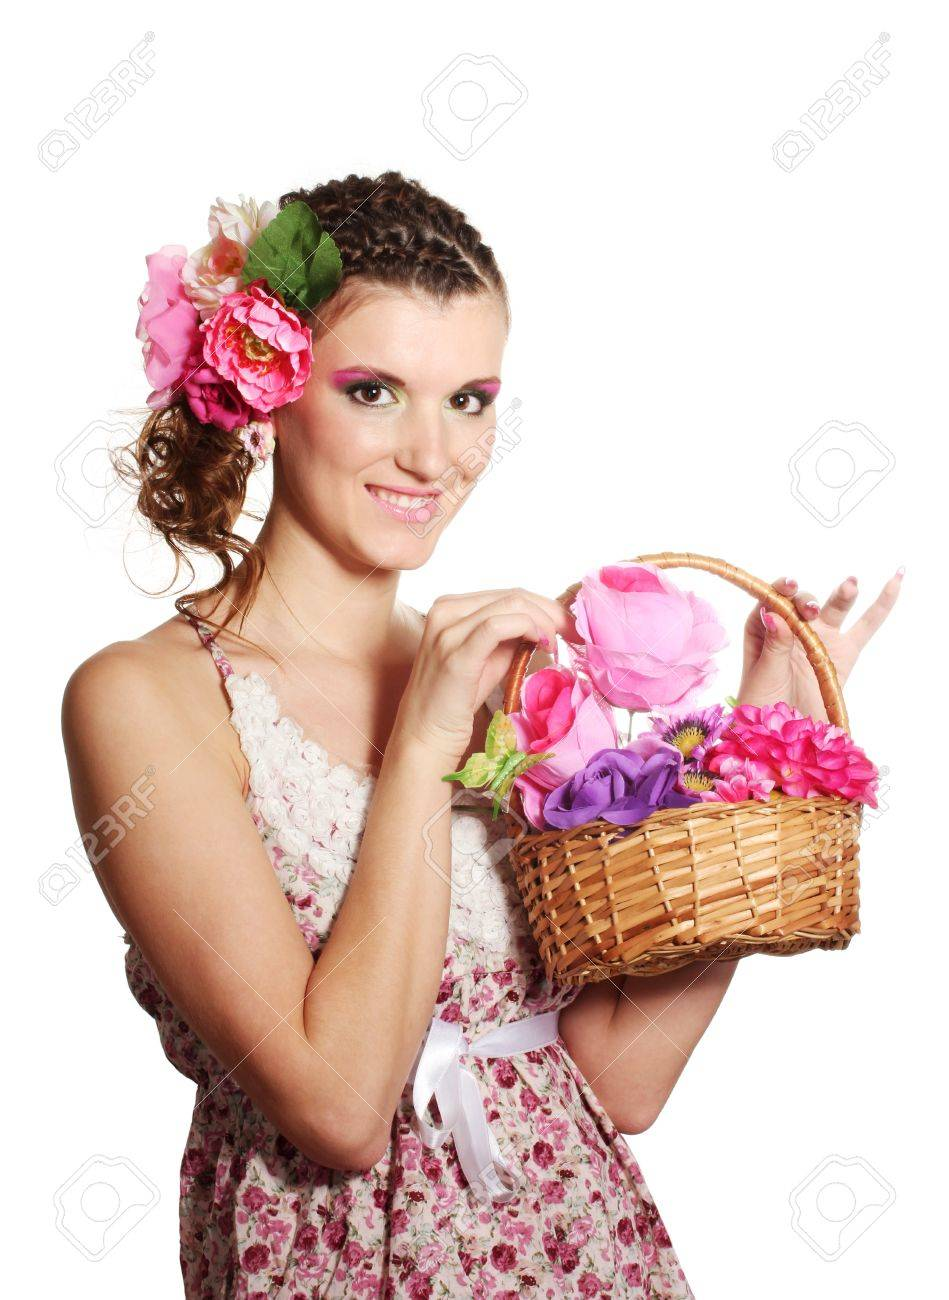 Beautiful girl with flowers in her hair and with a basket of flowers isolated on white Stock Photo - 11497079